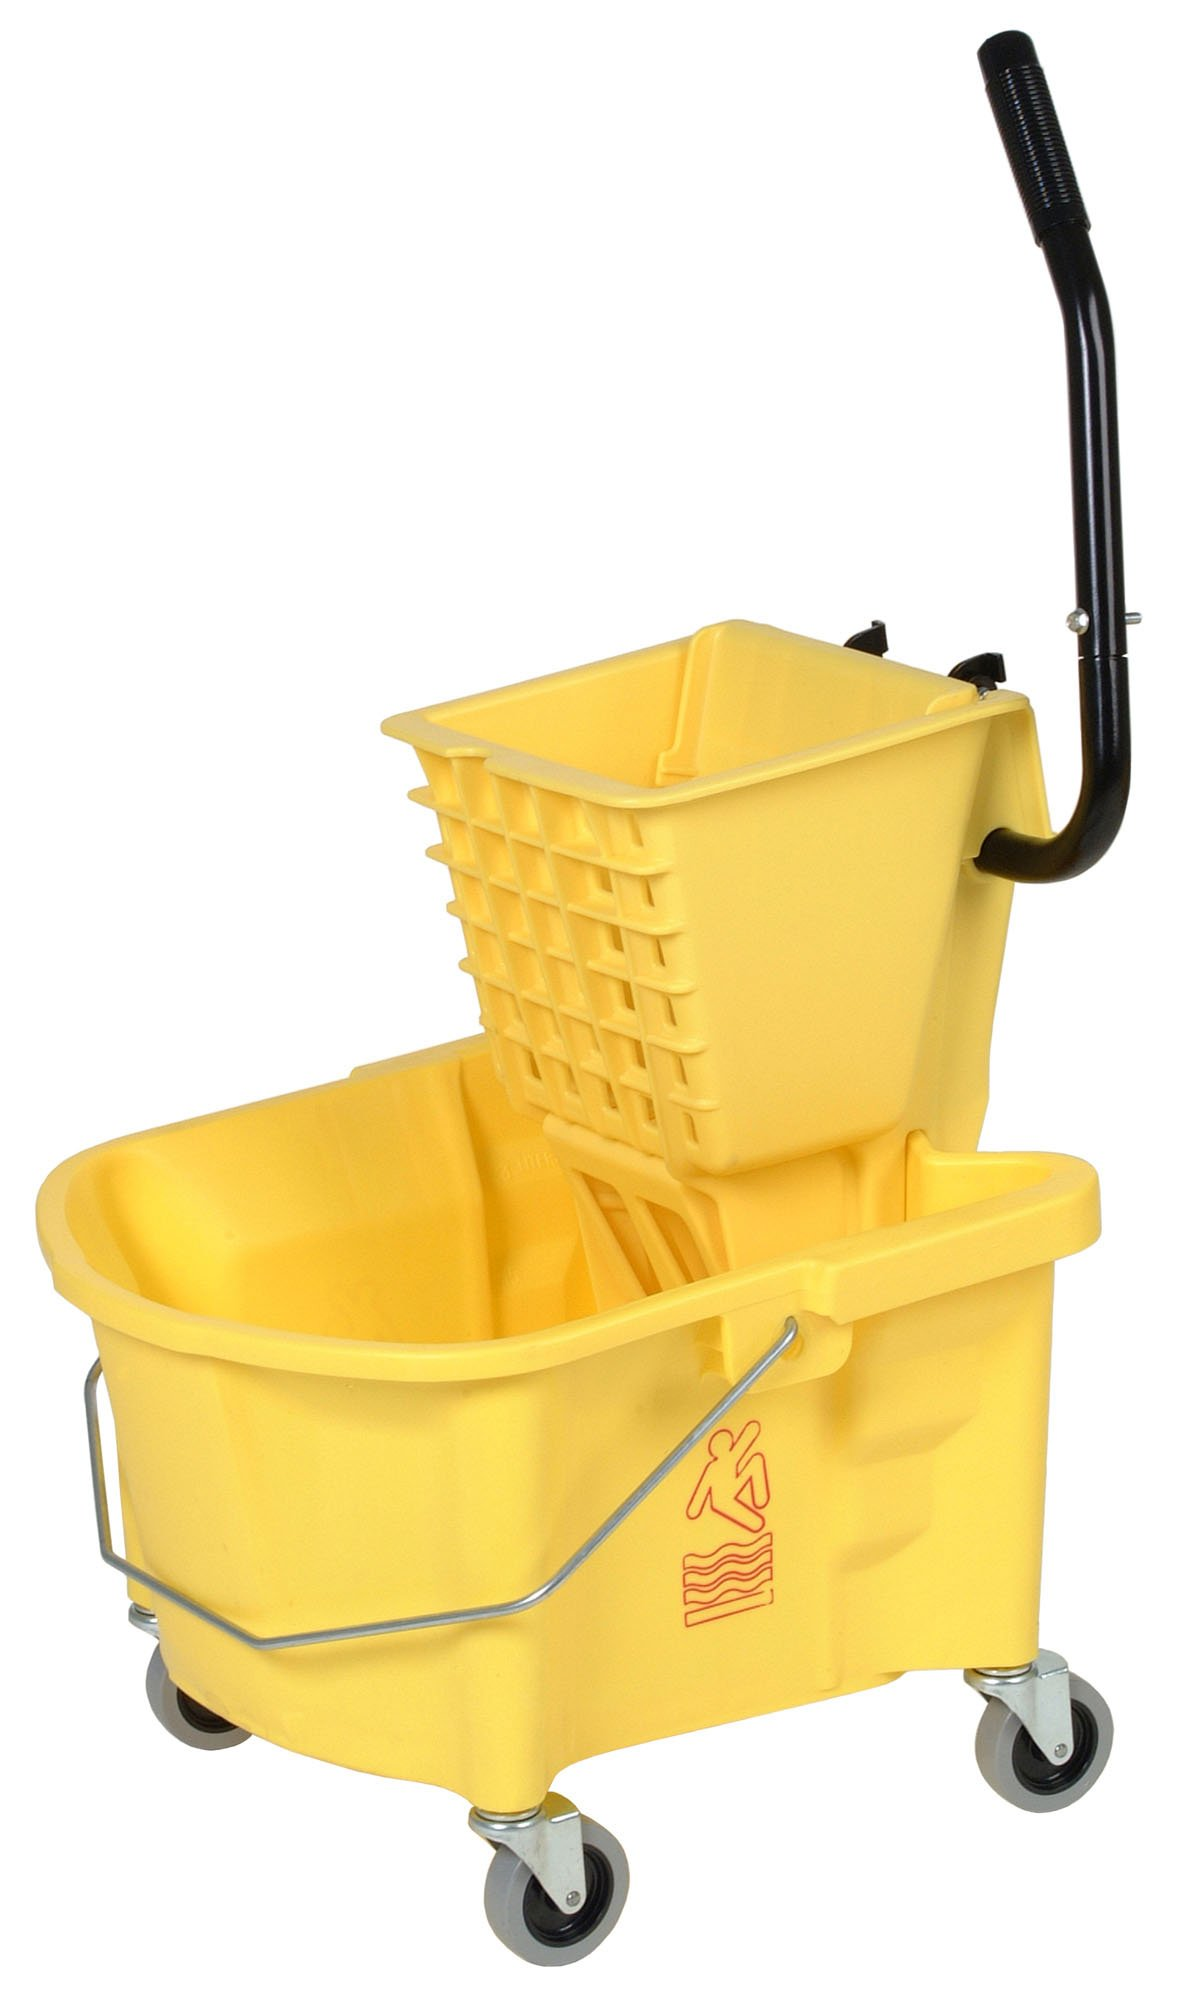 Continental 226-312YW, Yellow Splash Guard Combo Pack Bucket with 3'' Non-Marking Grey Casters and SW12 Side-Press Wringer, 26 quart Capacity (Case of 1)